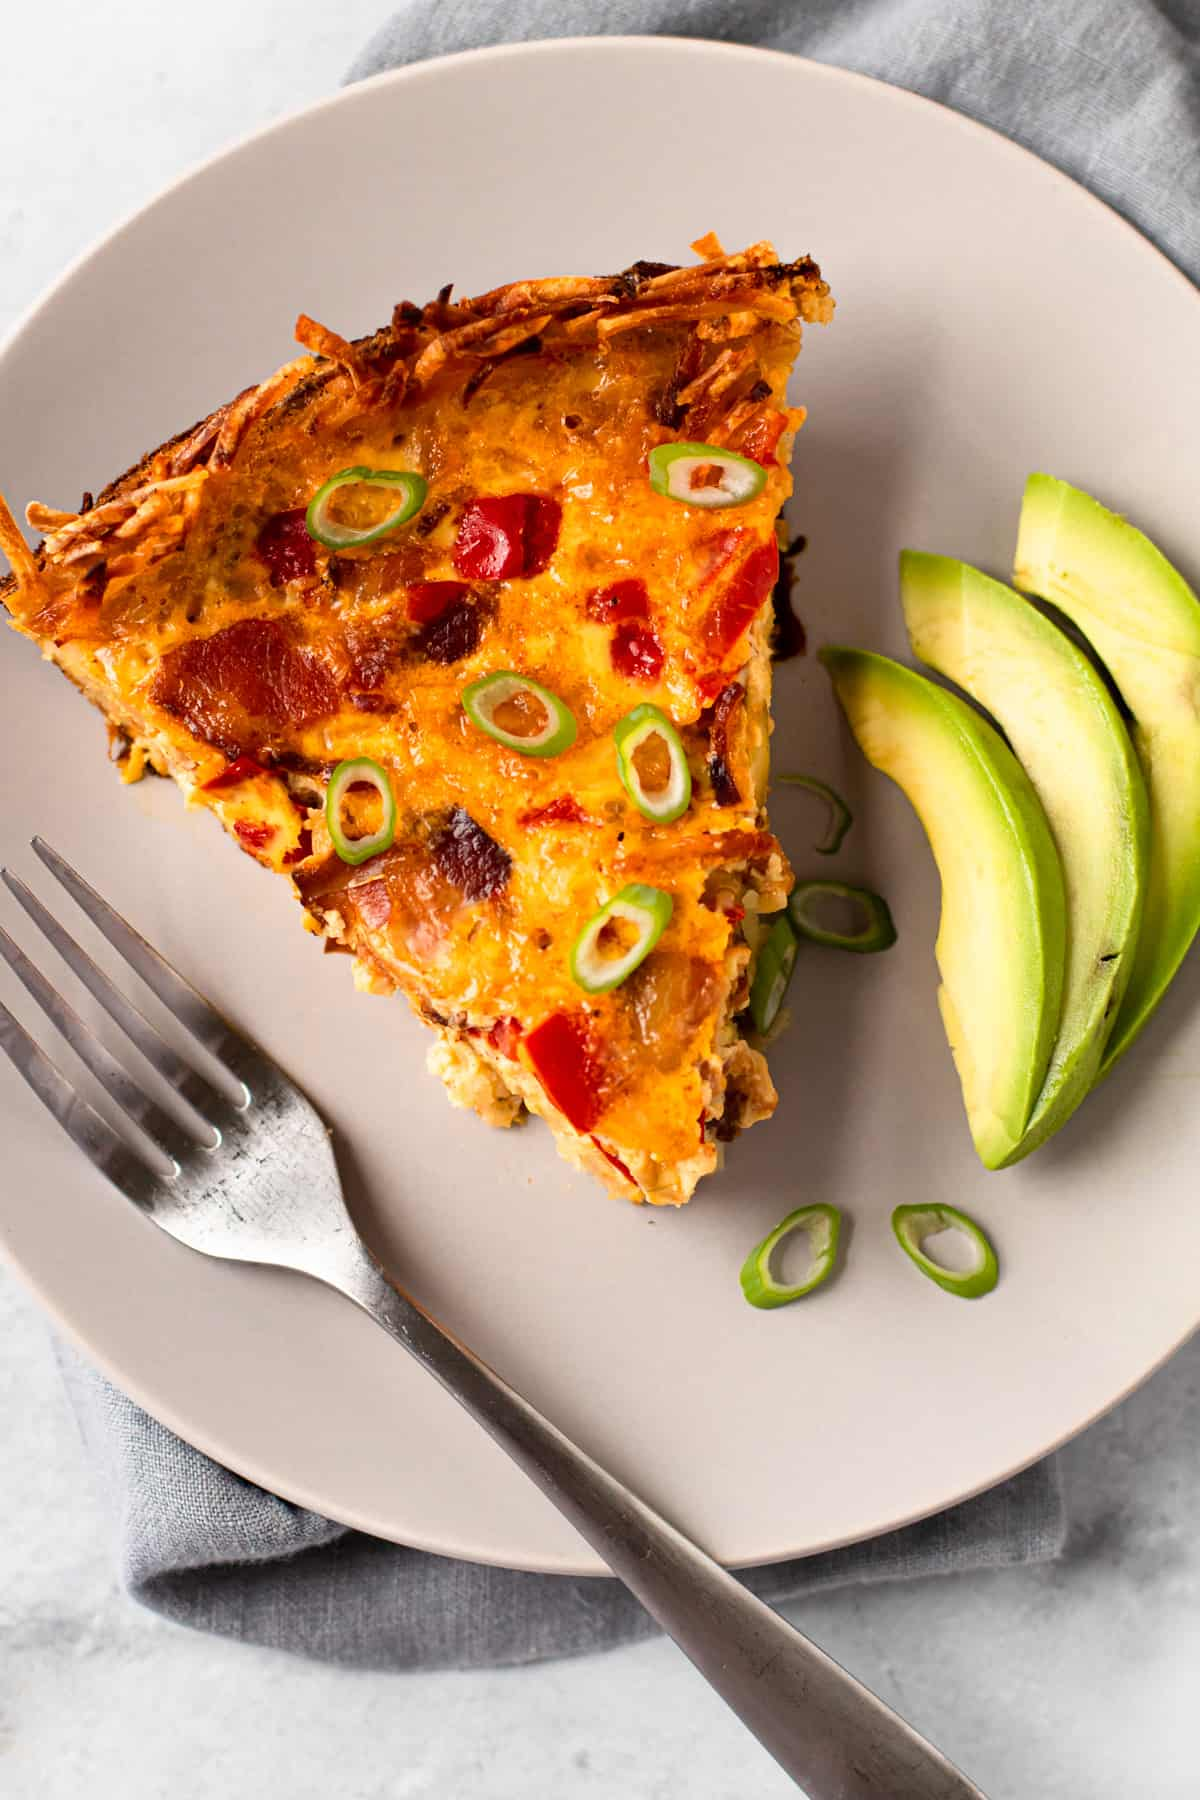 A slice of breakfast pie on a place with a fork and avocado.